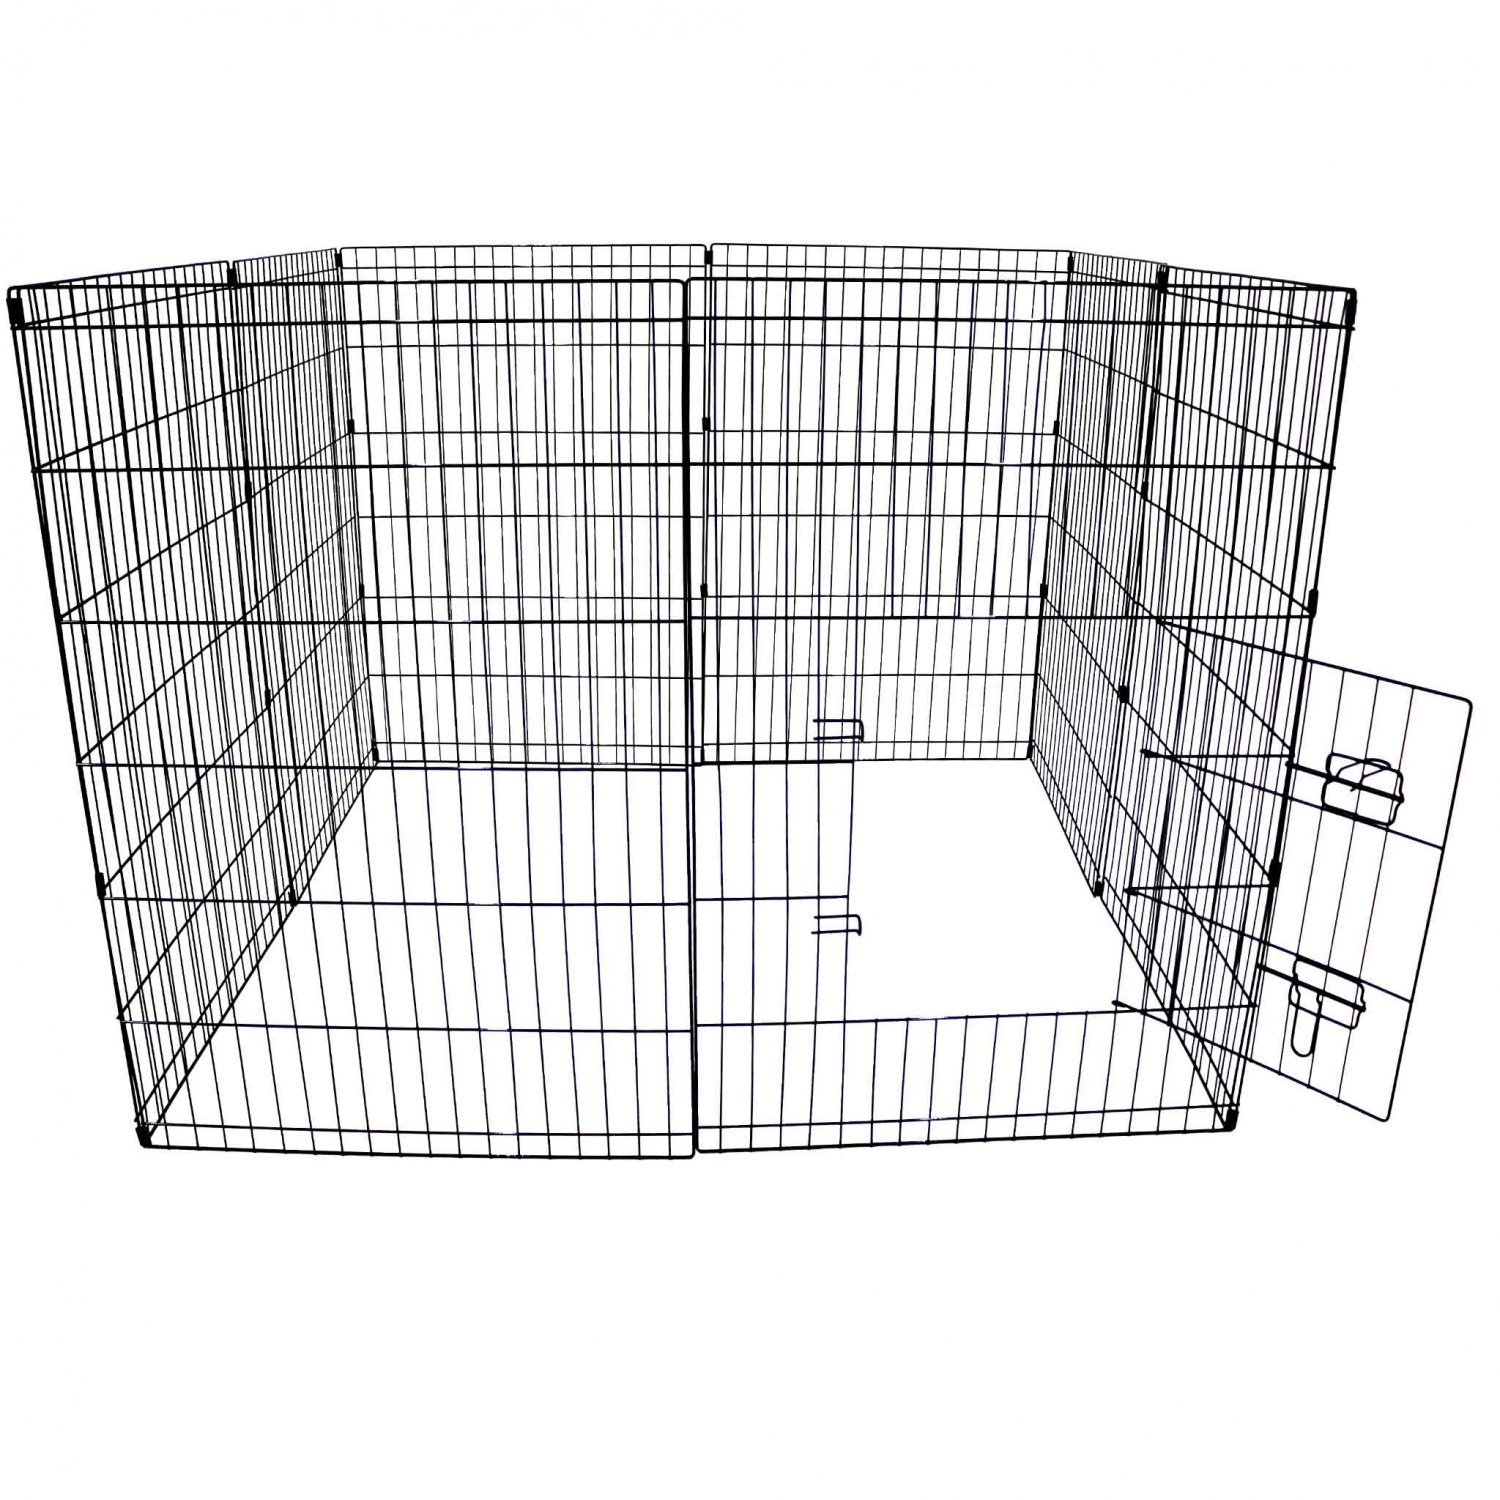 Large folding pet dog rabbit run play pen cage enclosure for Dog run cage enclosure